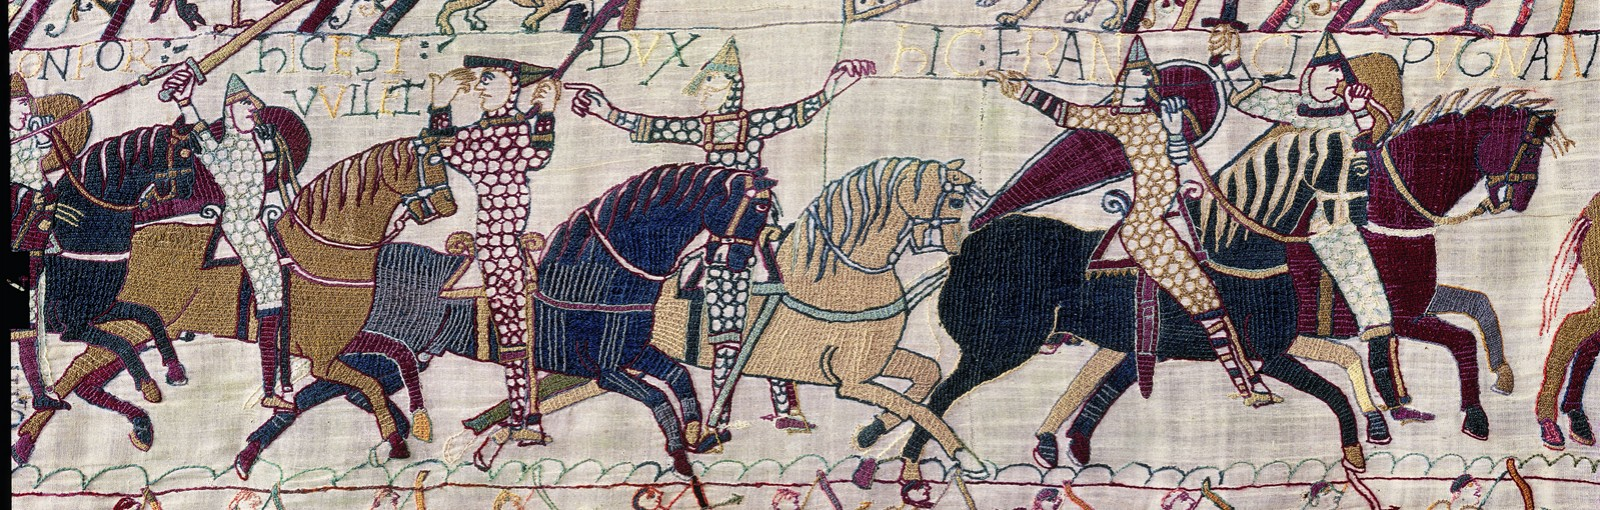 Bayeux tapestry - scene 55 - King William: see I'm alive!